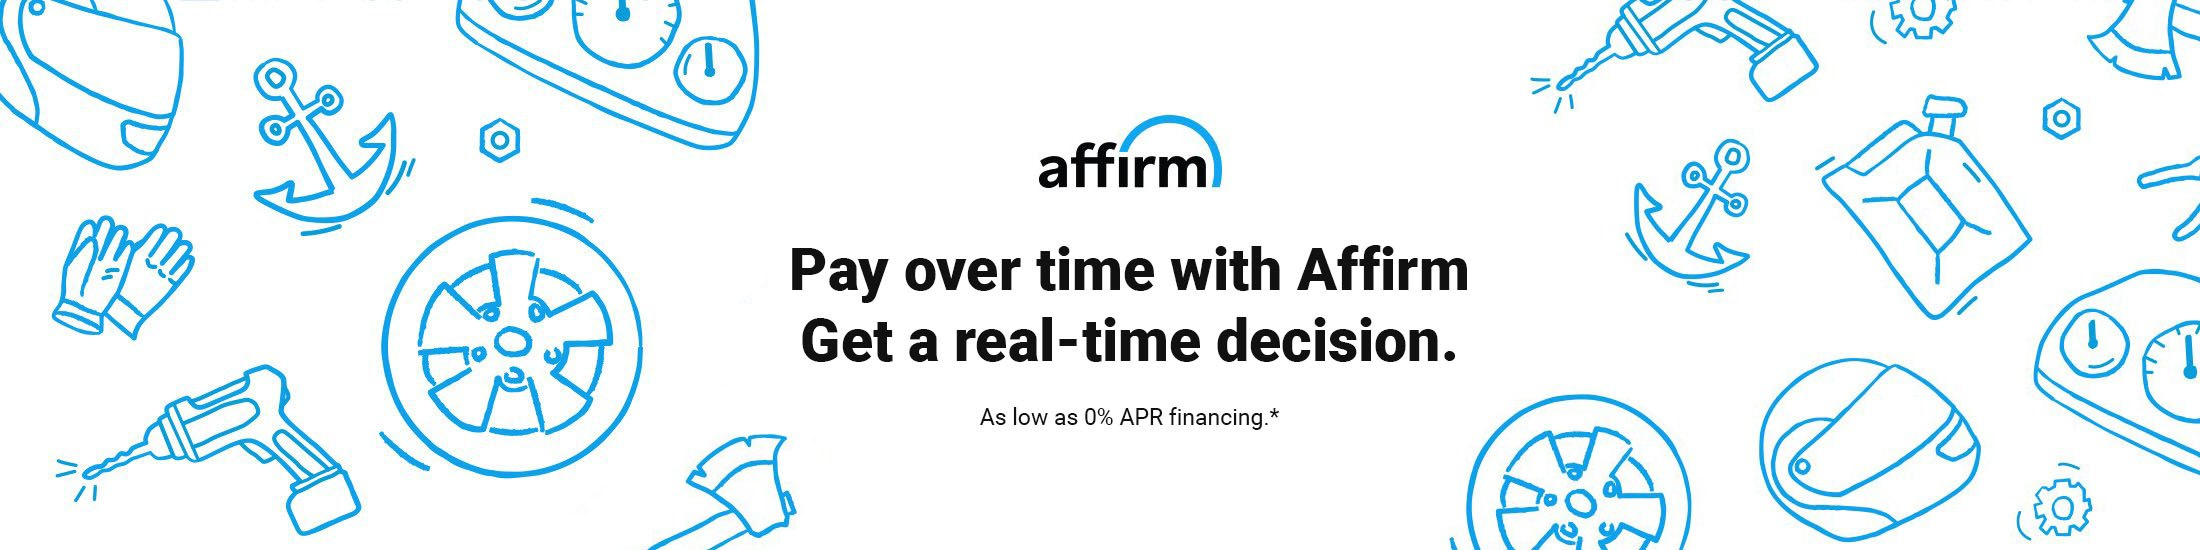 Affirm | Easy Financing | Pay Later with Affirm - CARiD com